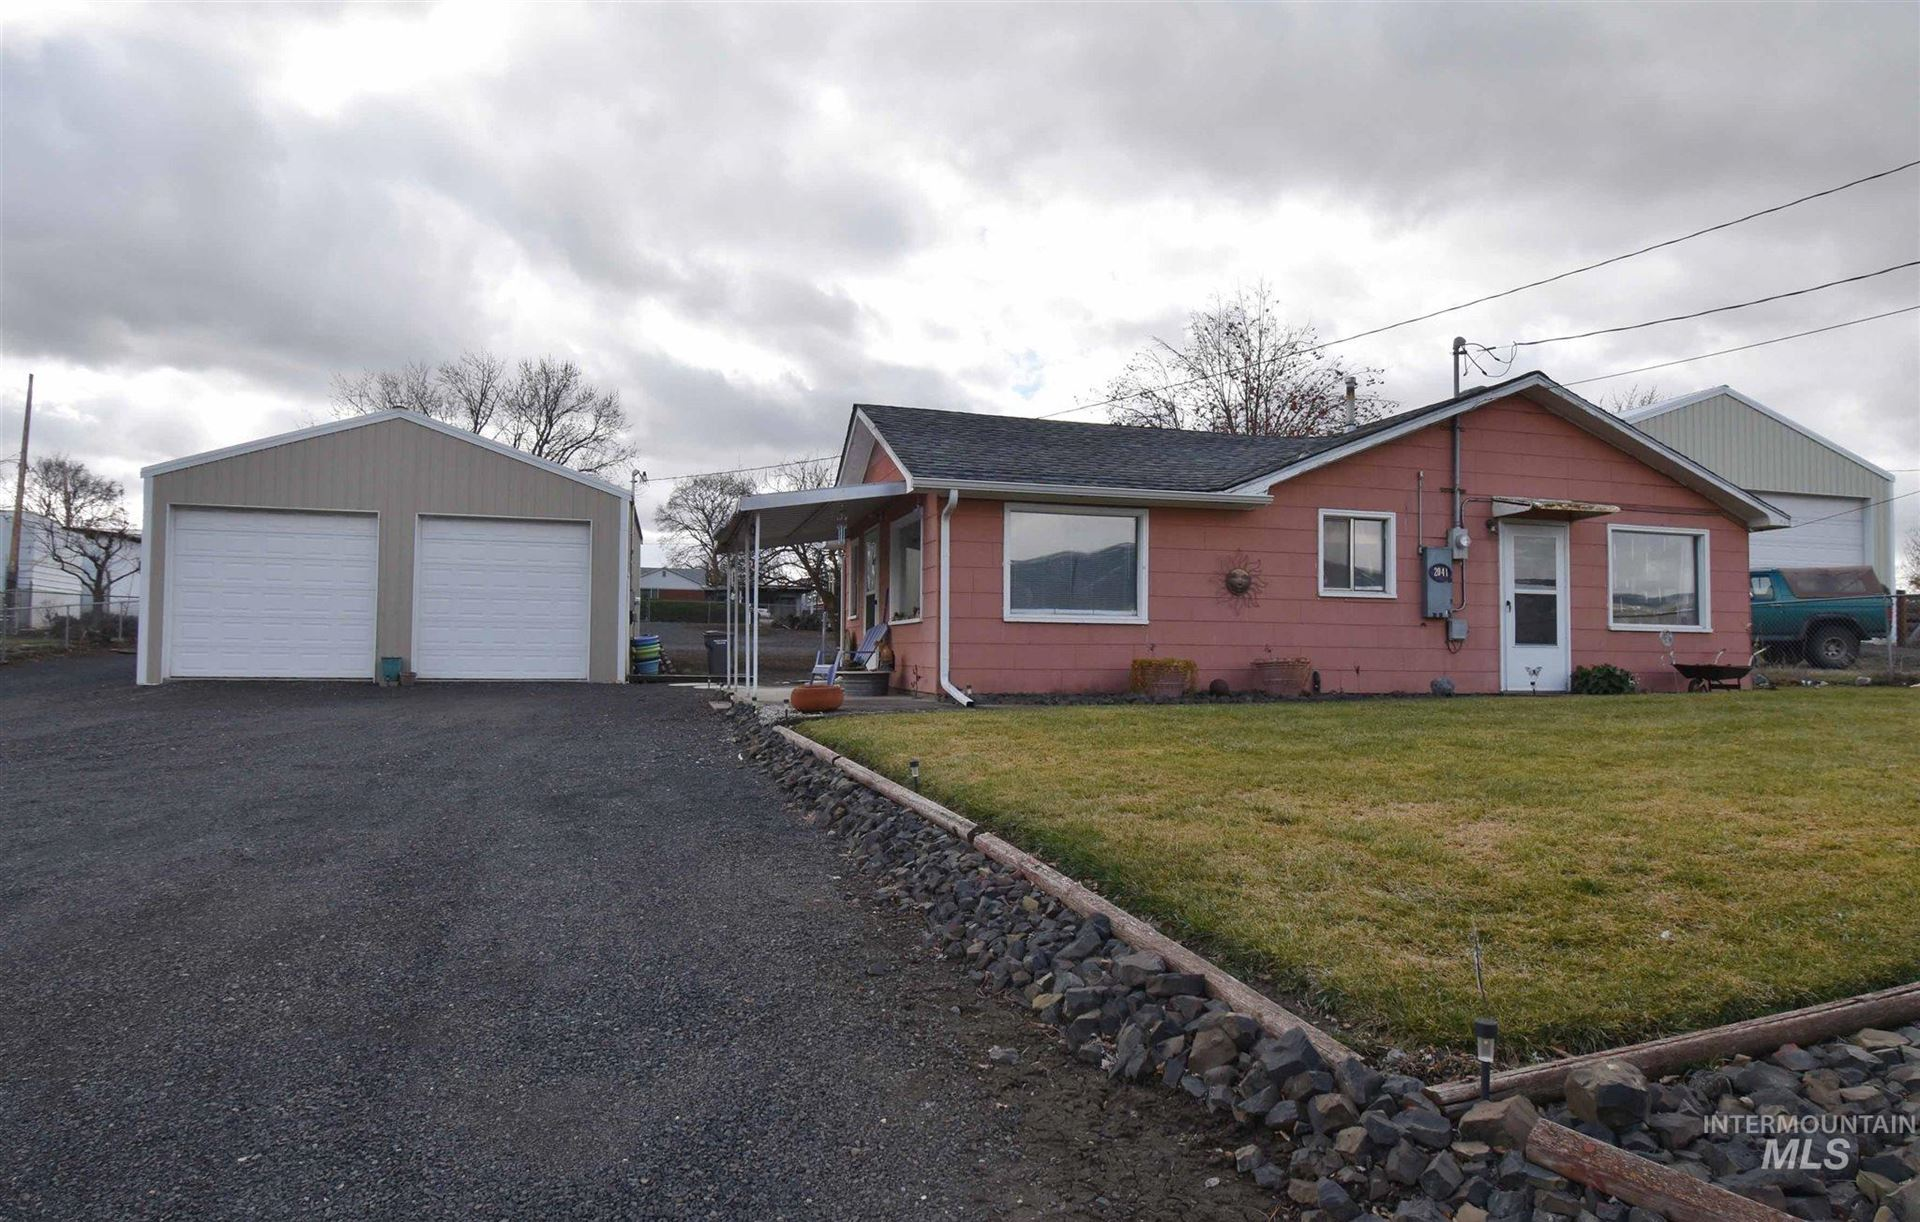 Photo of 2041 Valleyview Drive, Clarkston, WA 99403 (MLS # 98794854)